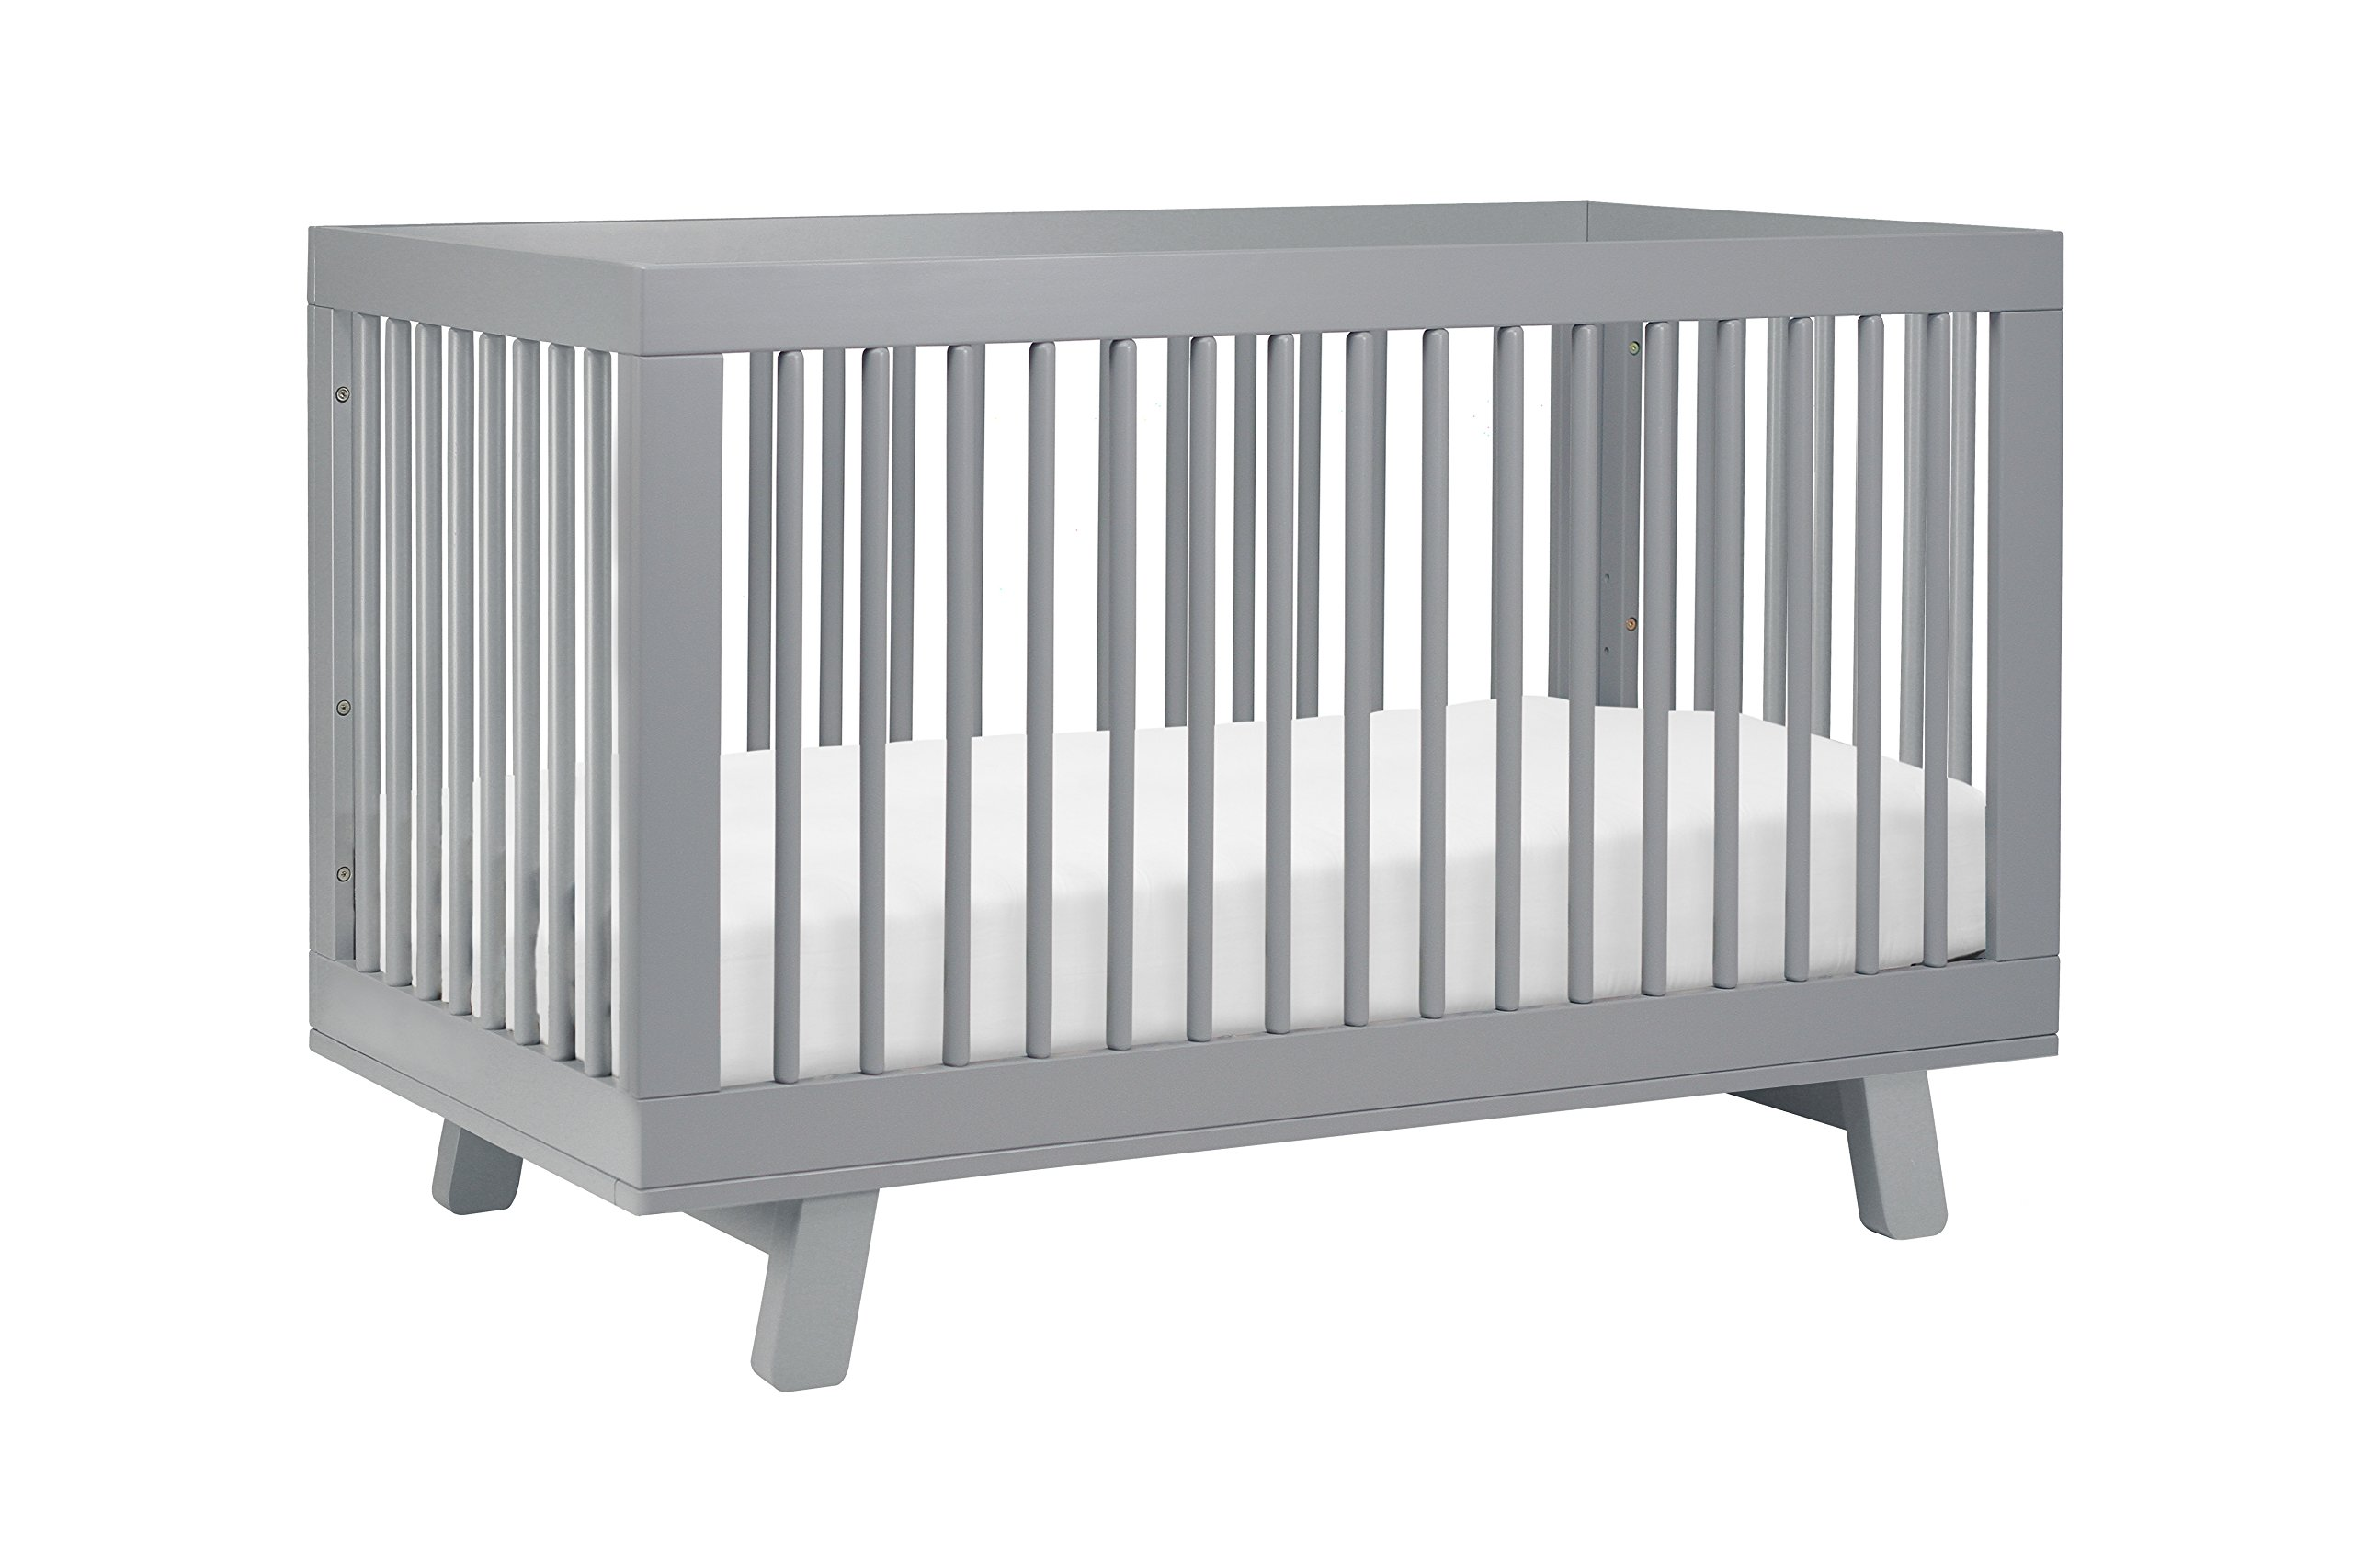 Baby Crib Mattress Critiques Amazon.com : Babyletto Hudson 3-in-1 Convertible Crib with Toddler Bed  Conversion Kit, Grey : Hudson Crib Gray : Baby